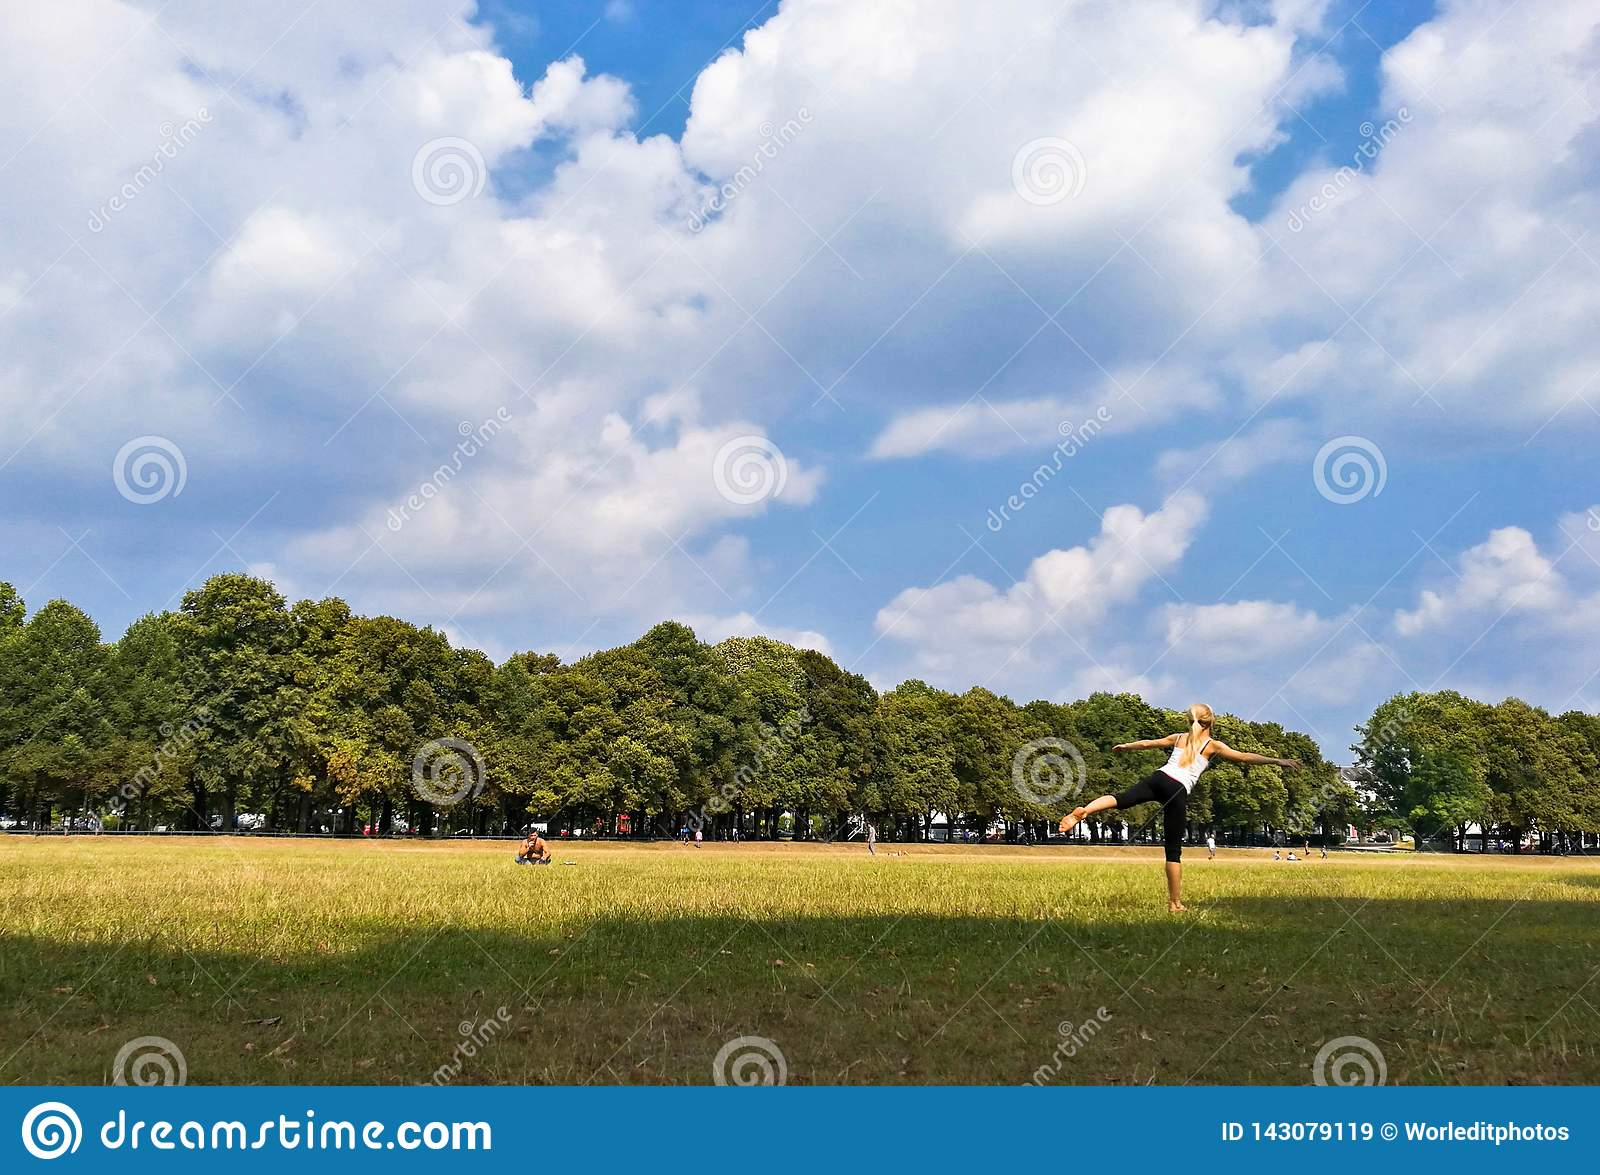 woman practicing yoga outdoor in the park on a sunny day